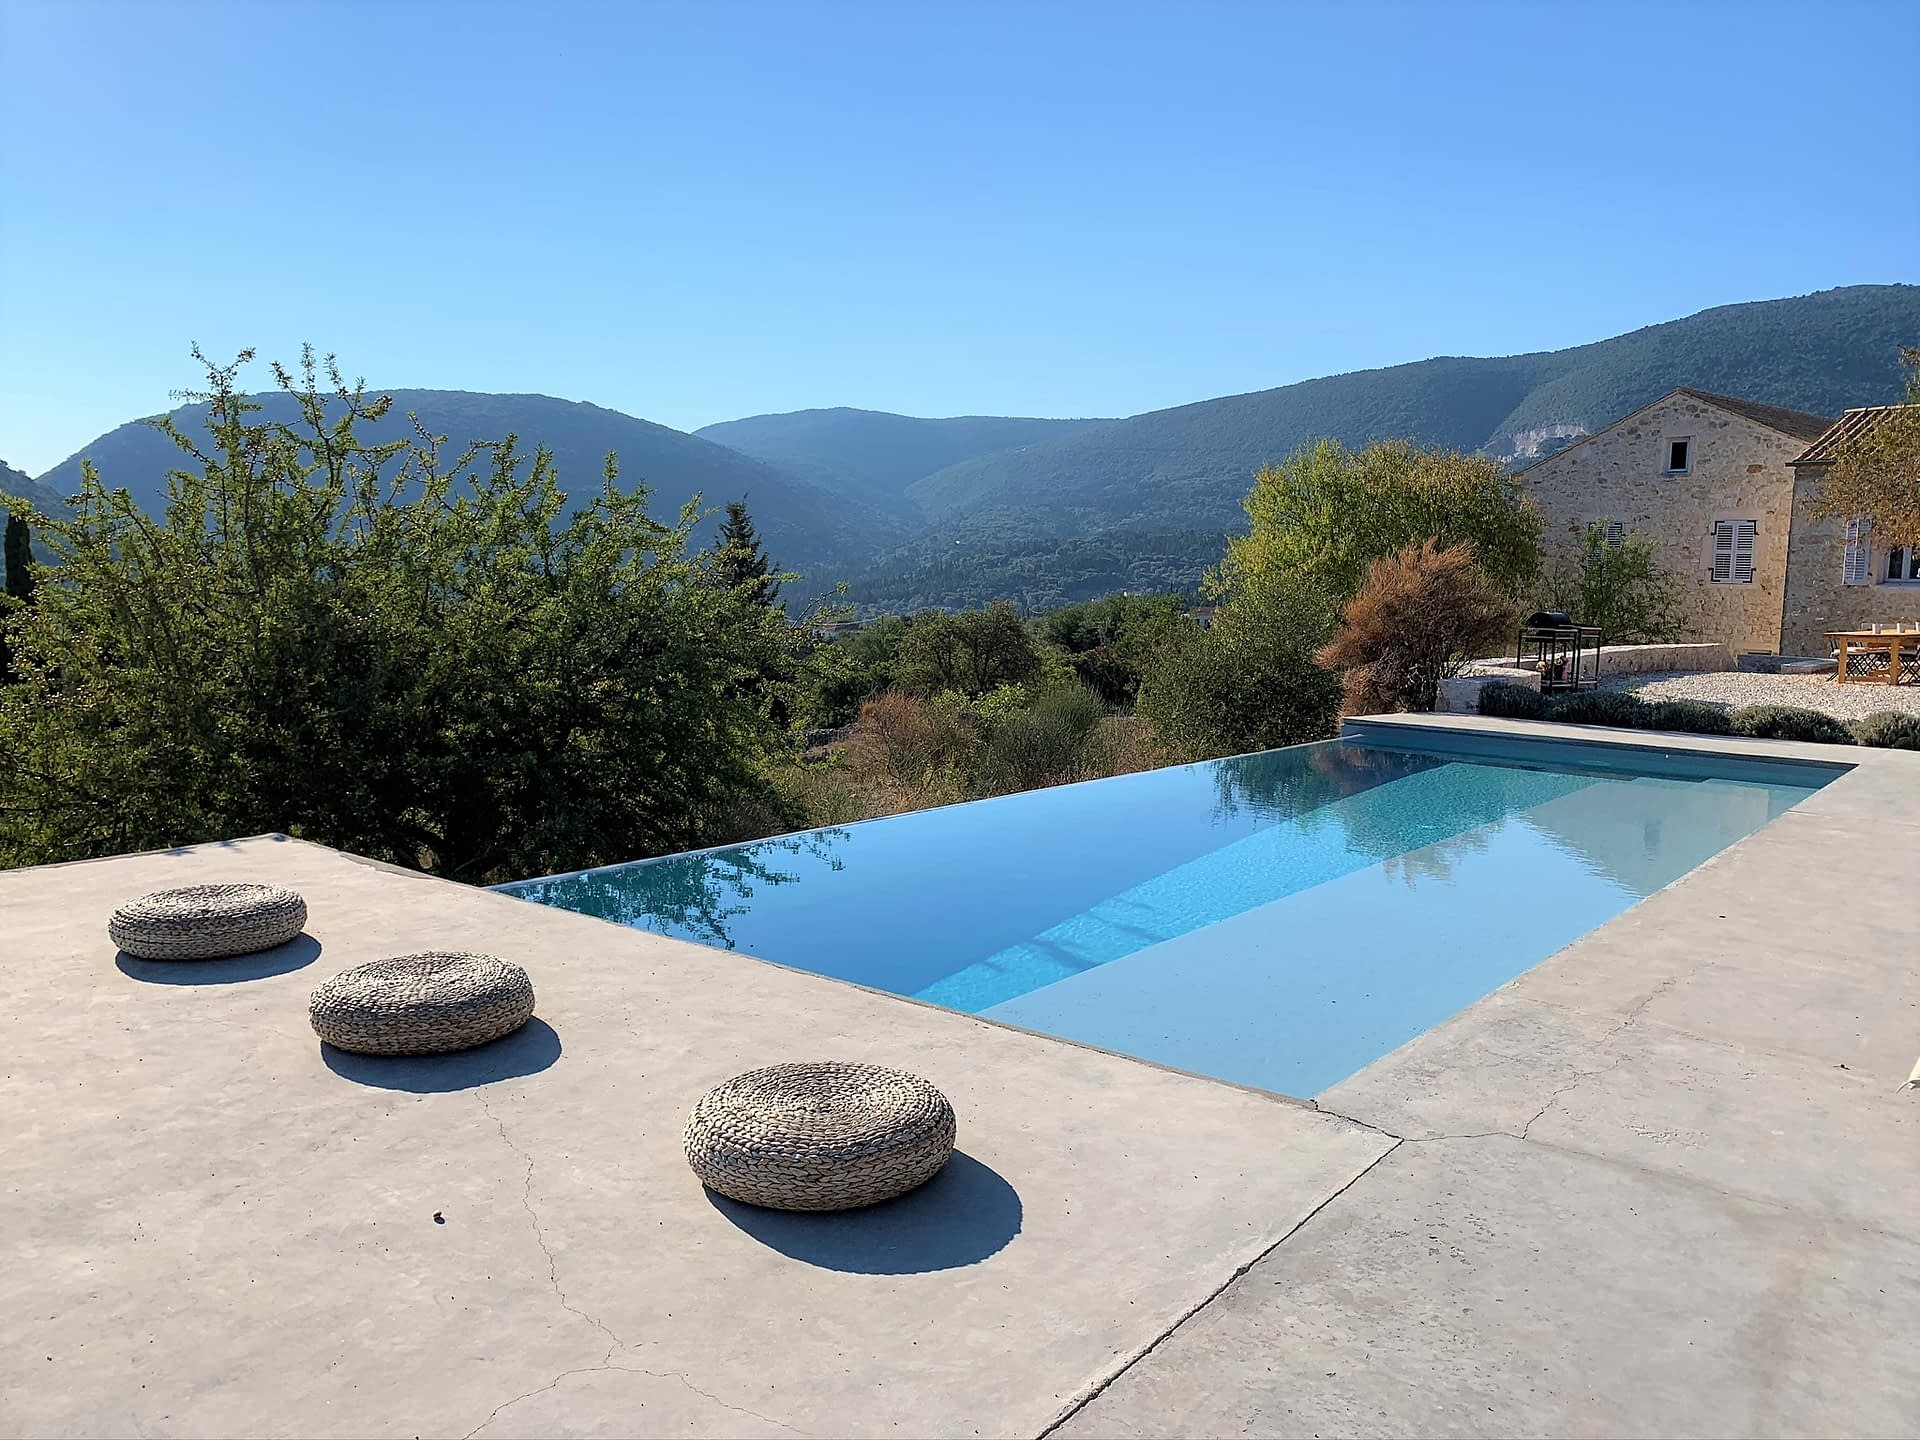 Salt water pool area at Villa Kalos for rent, Ithaca Greece Lahos